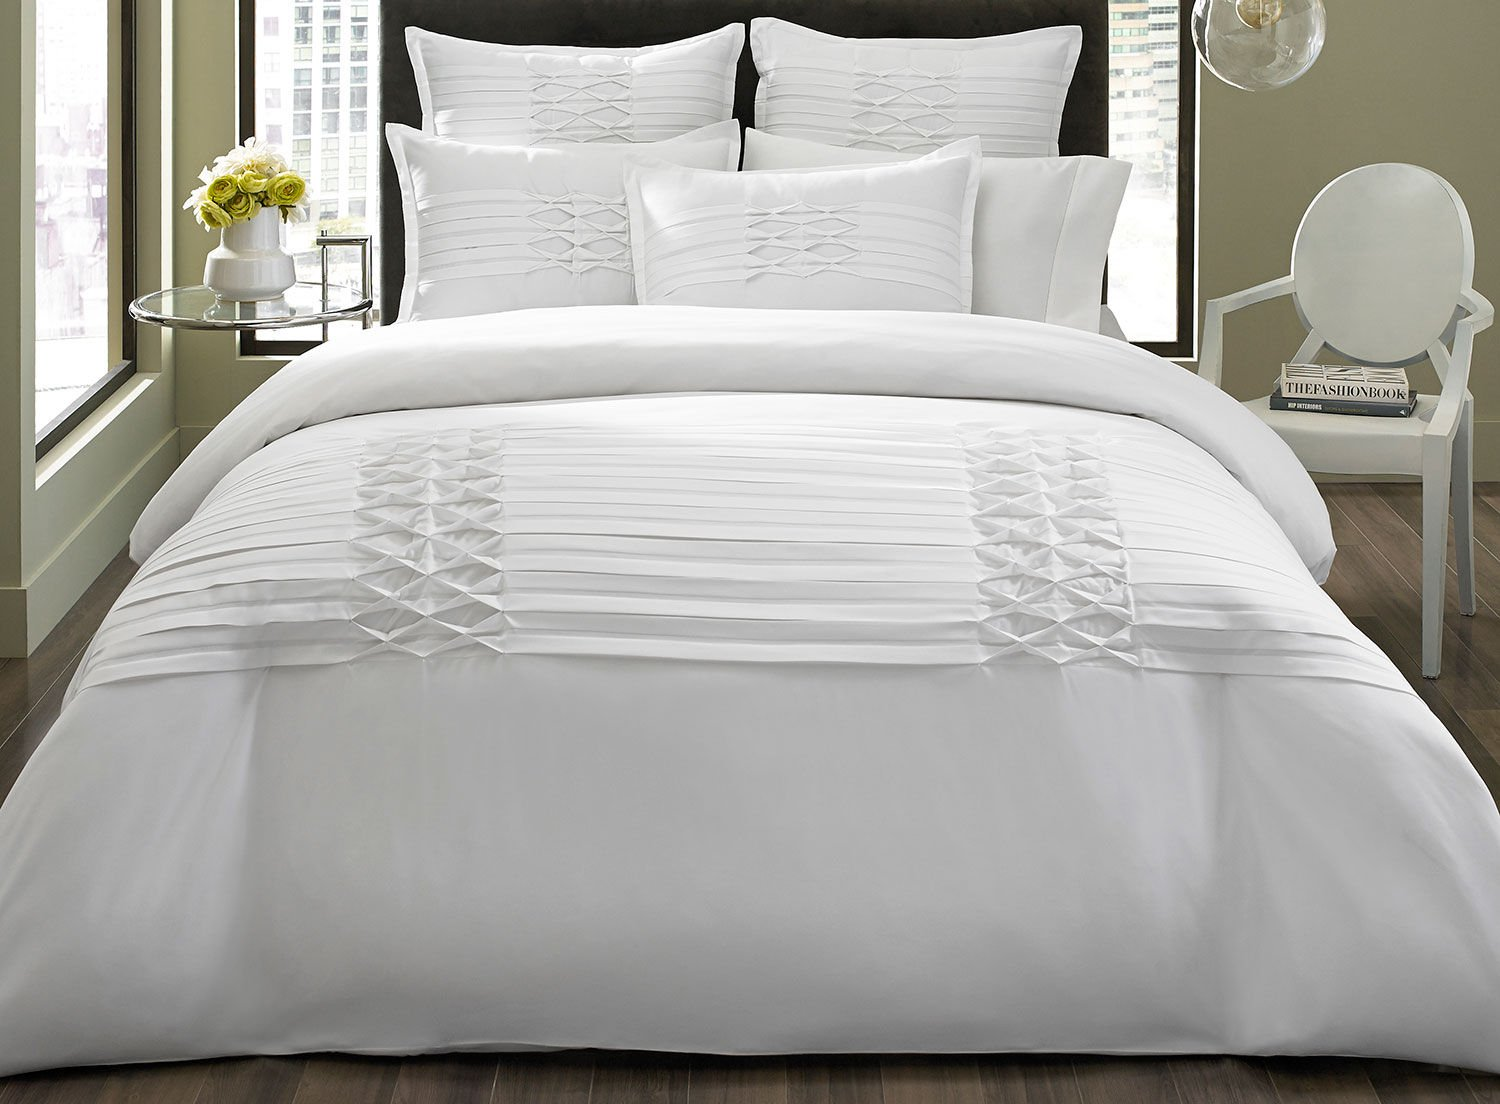 City Scene Triple Diamond White Comforter/Sham Set, White, King